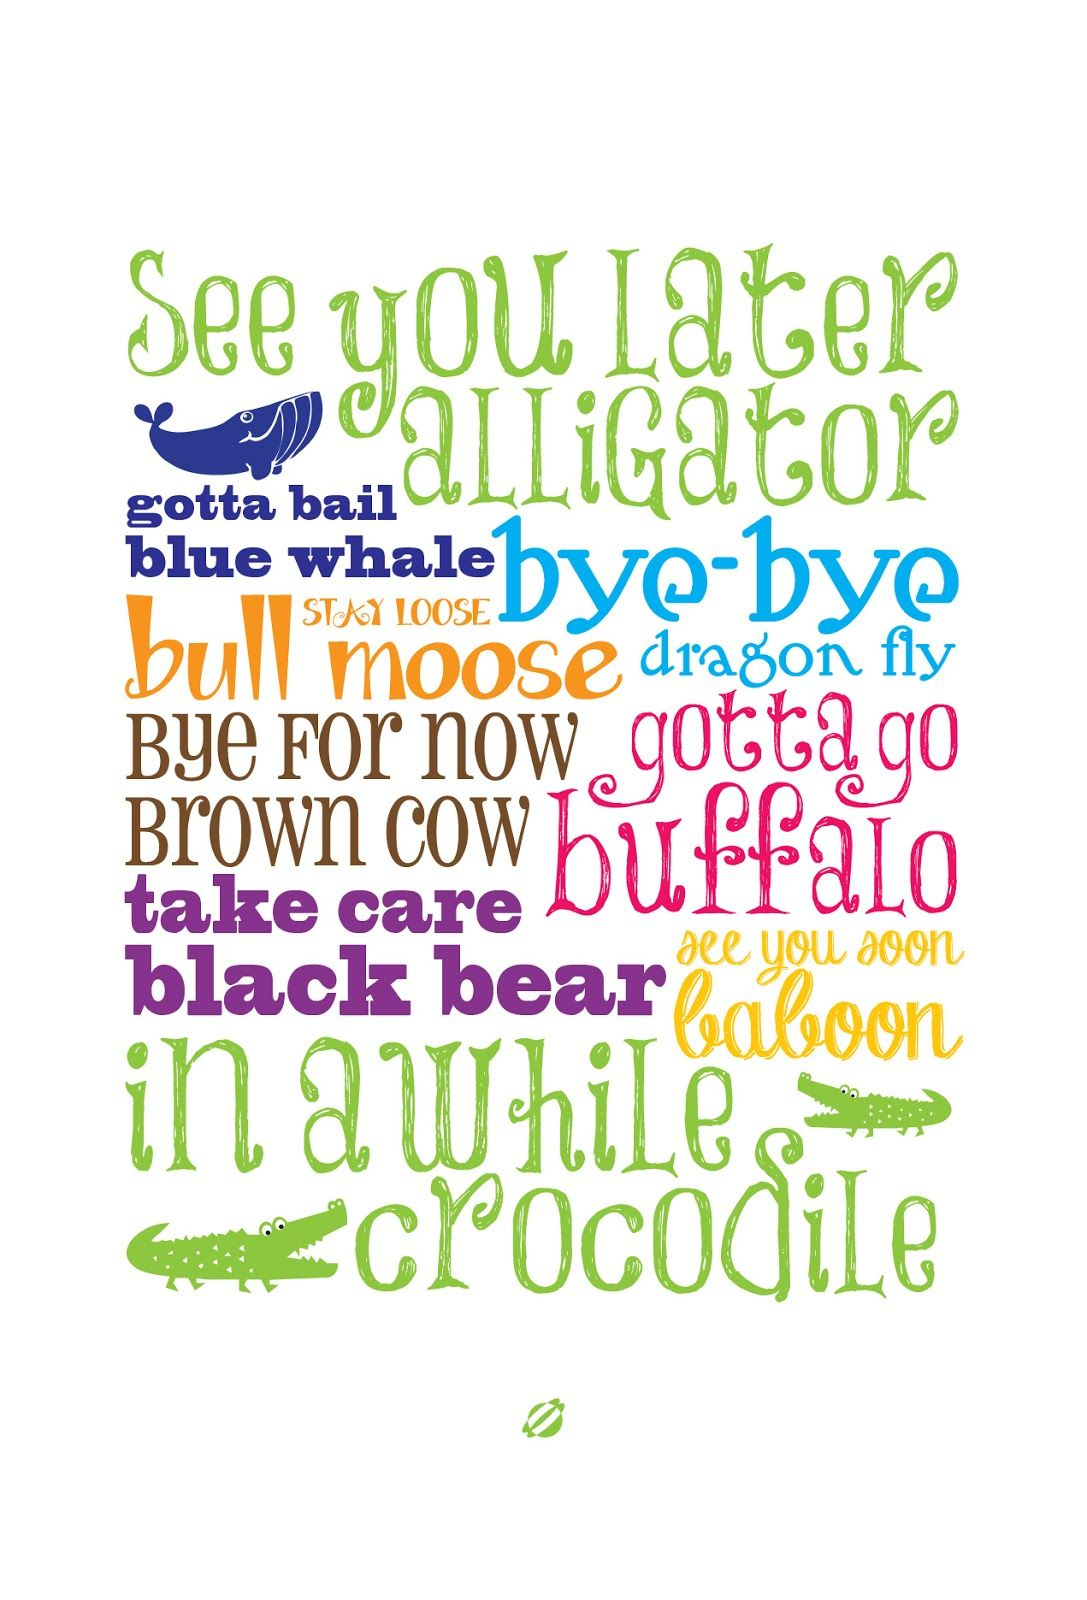 Free Printable Nursery Wall Art ♥ // Lostbumblebee @tabitha - See You Later Alligator Free Printable